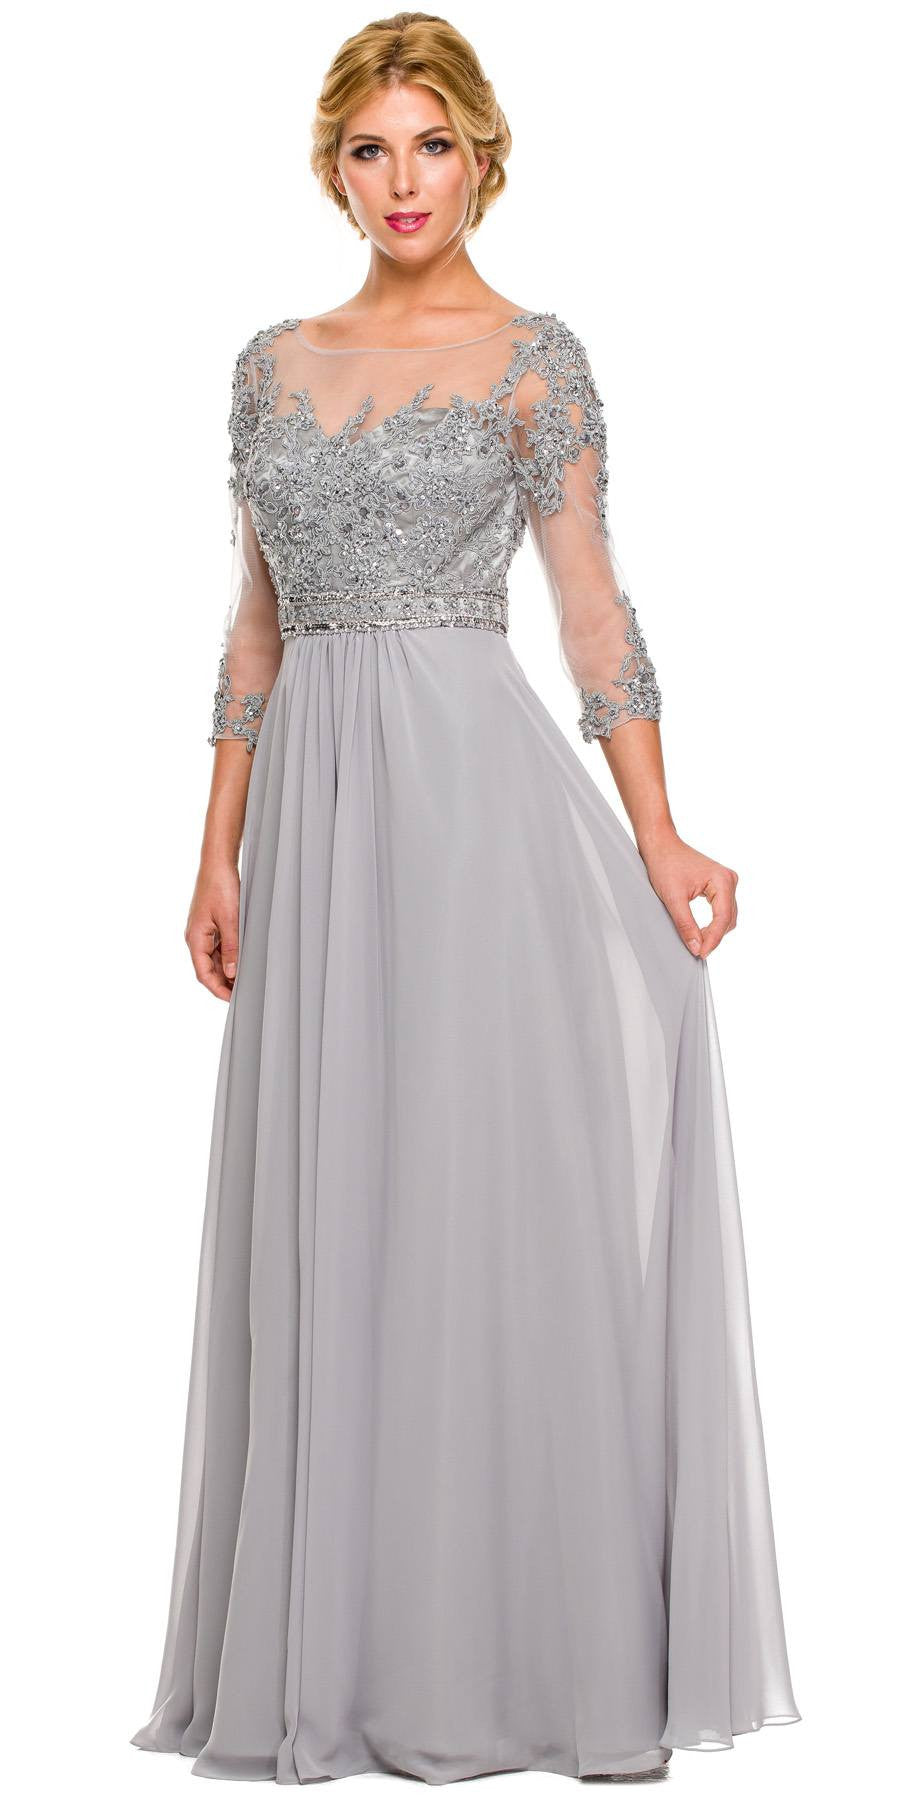 3/4 Length Sleeve Silver Formal Gown Illusion Neck Embroidery